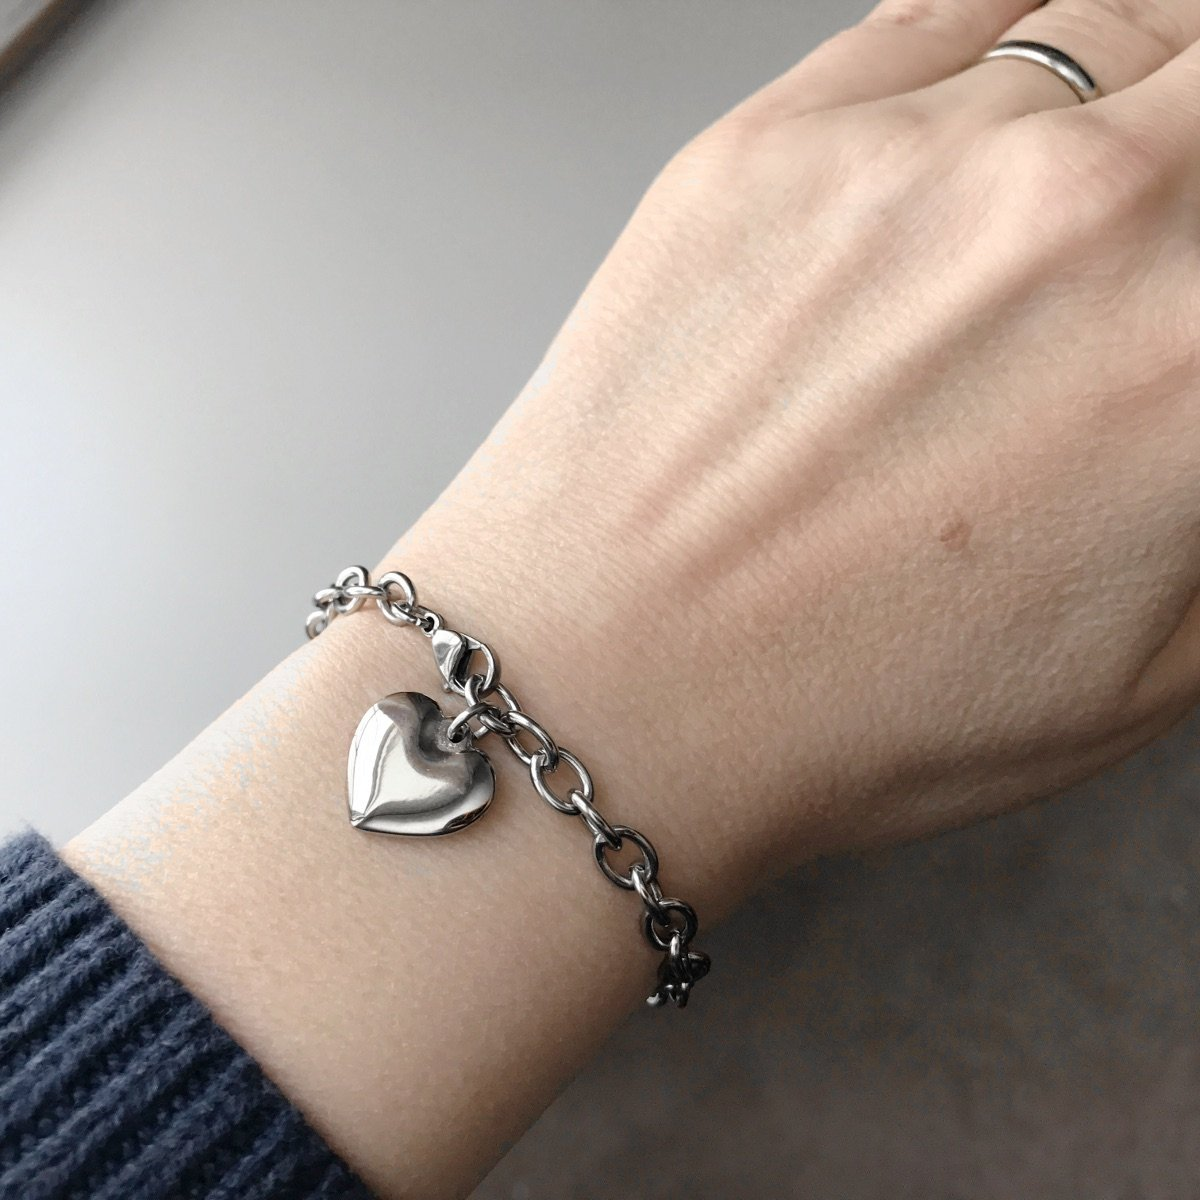 Womens Stainless Steel Heart Charm Chain Bracelet Adjustable (6.5 - 7 inches)) by Loralyn Designs (Image #3)